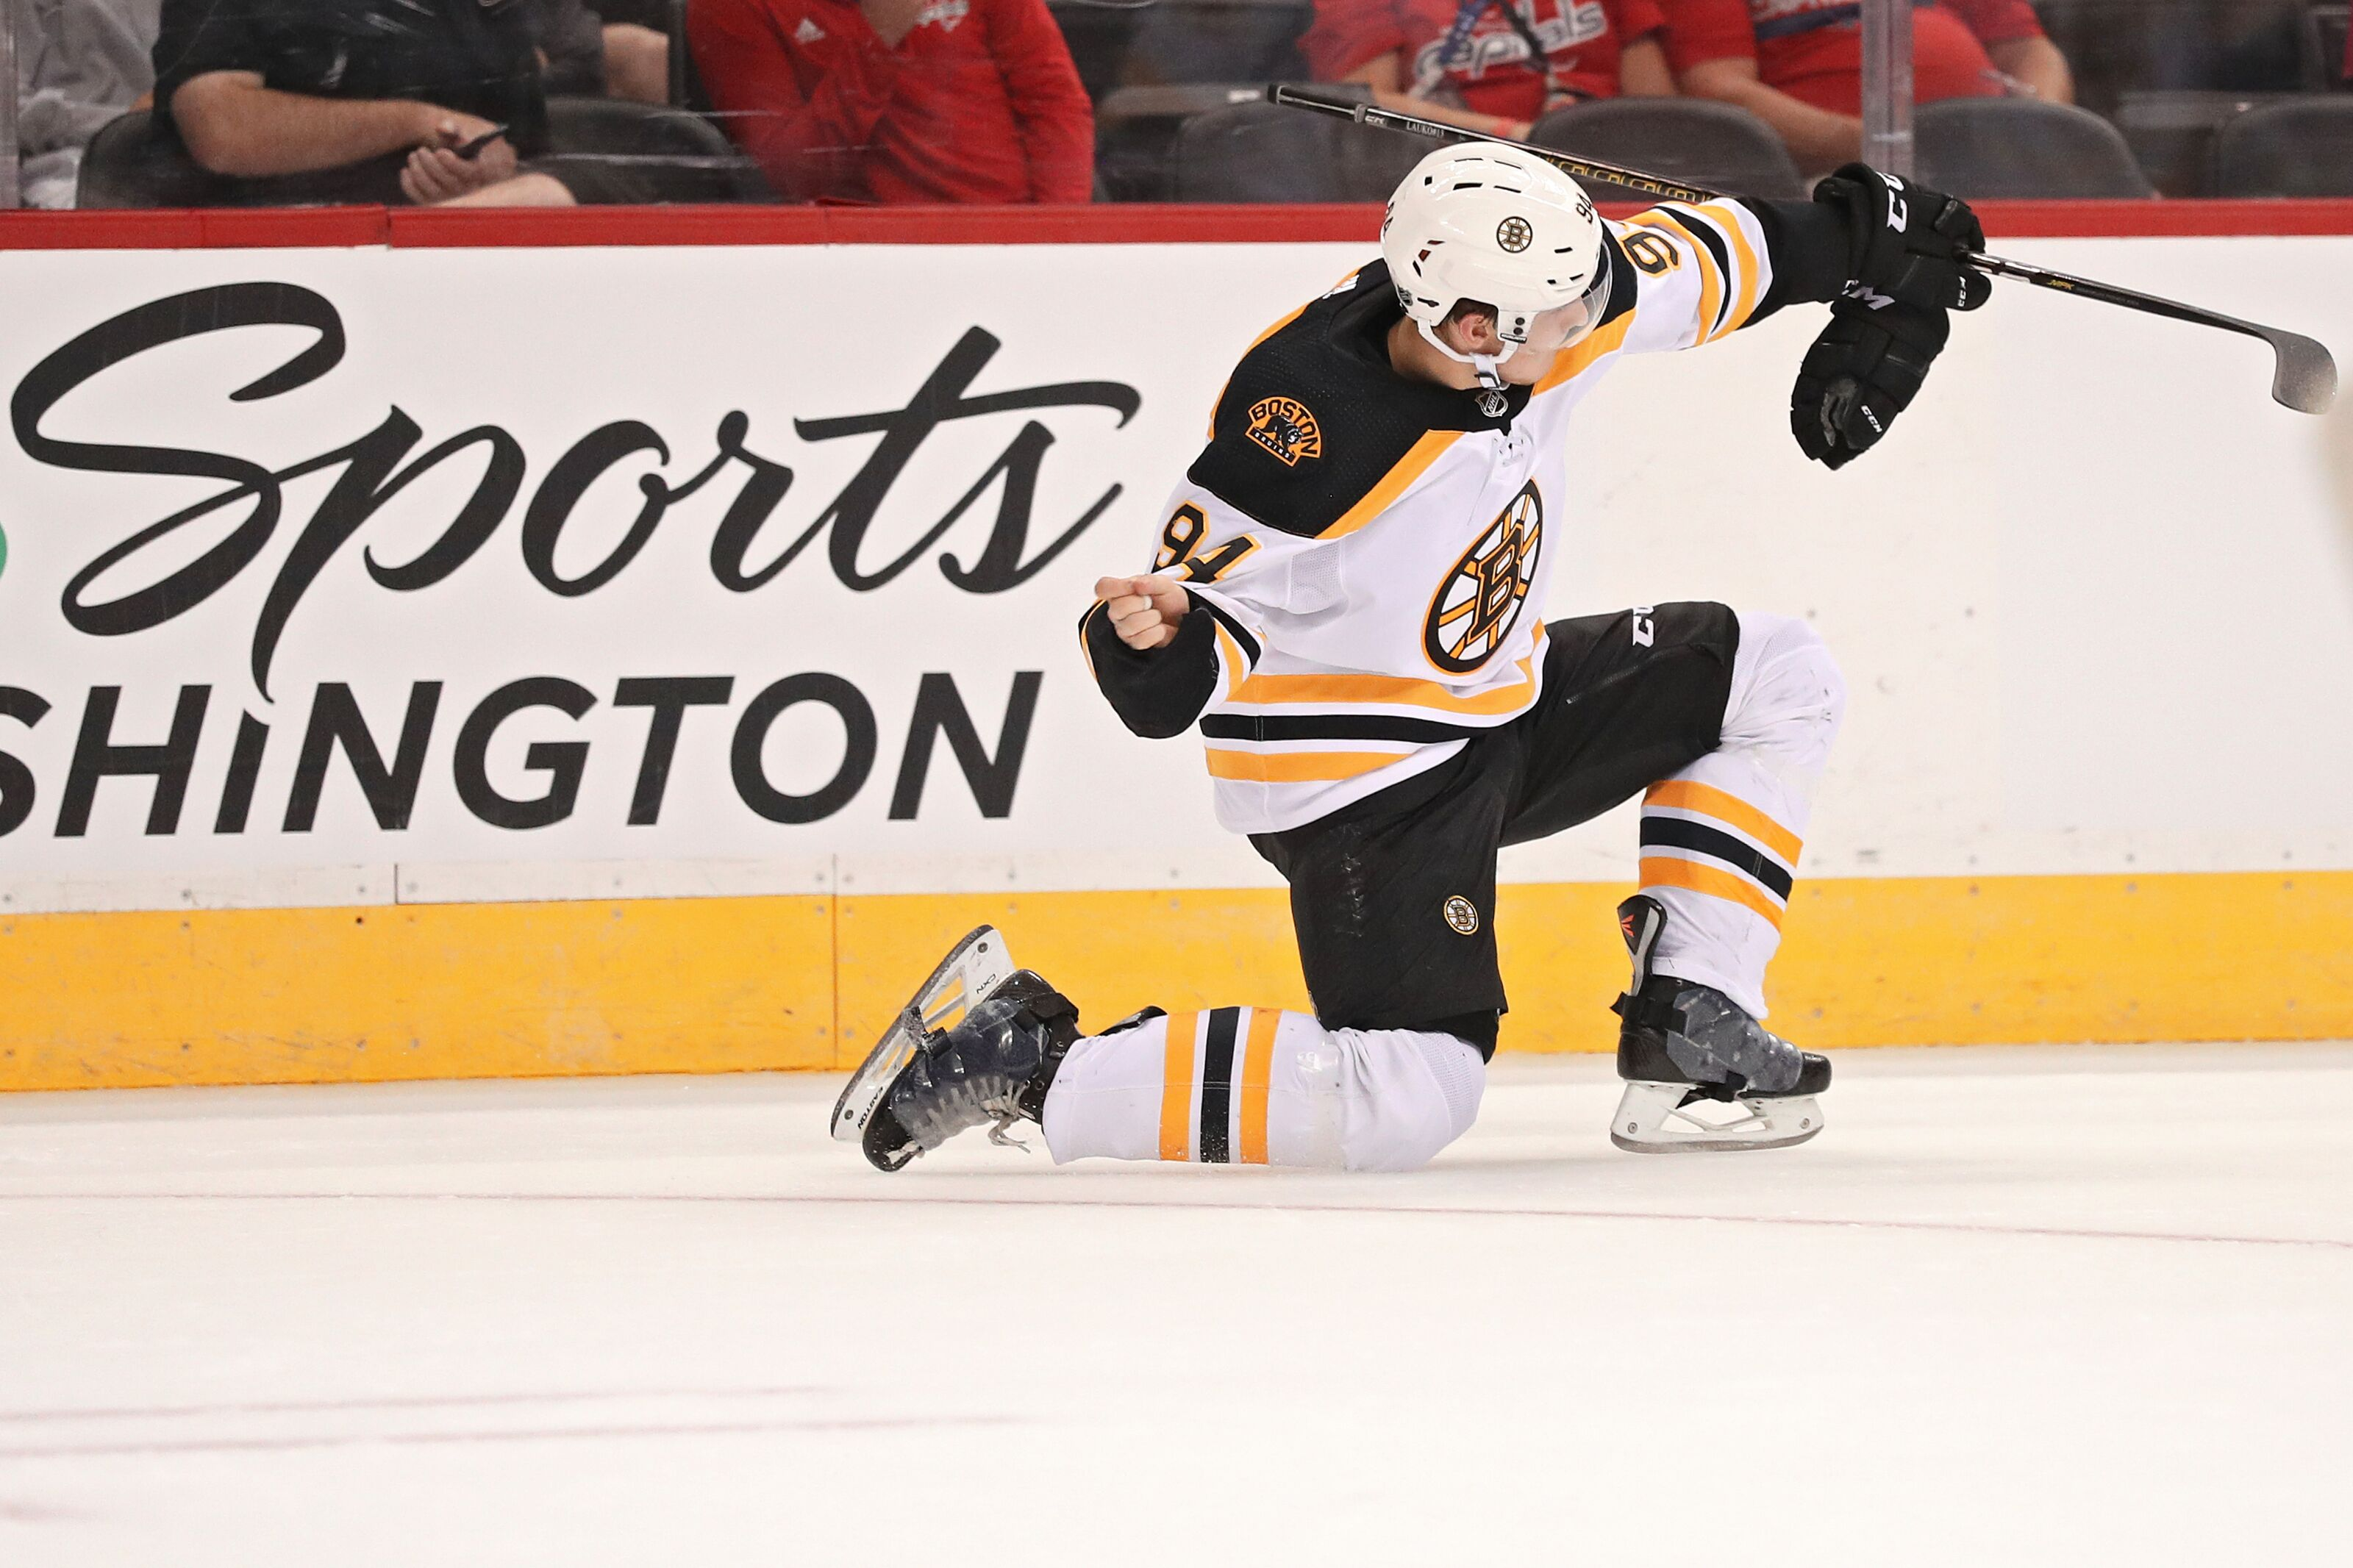 WASHINGTON, DC - SEPTEMBER 18: Jakub Lauko #94 of the Boston Bruins celebrates after scoring a goal against the Washington Capitals during the first period of a preseason NHL game at Capital One Arena on September 18, 2018 in Washington, DC. (Photo by Patrick Smith/Getty Images)